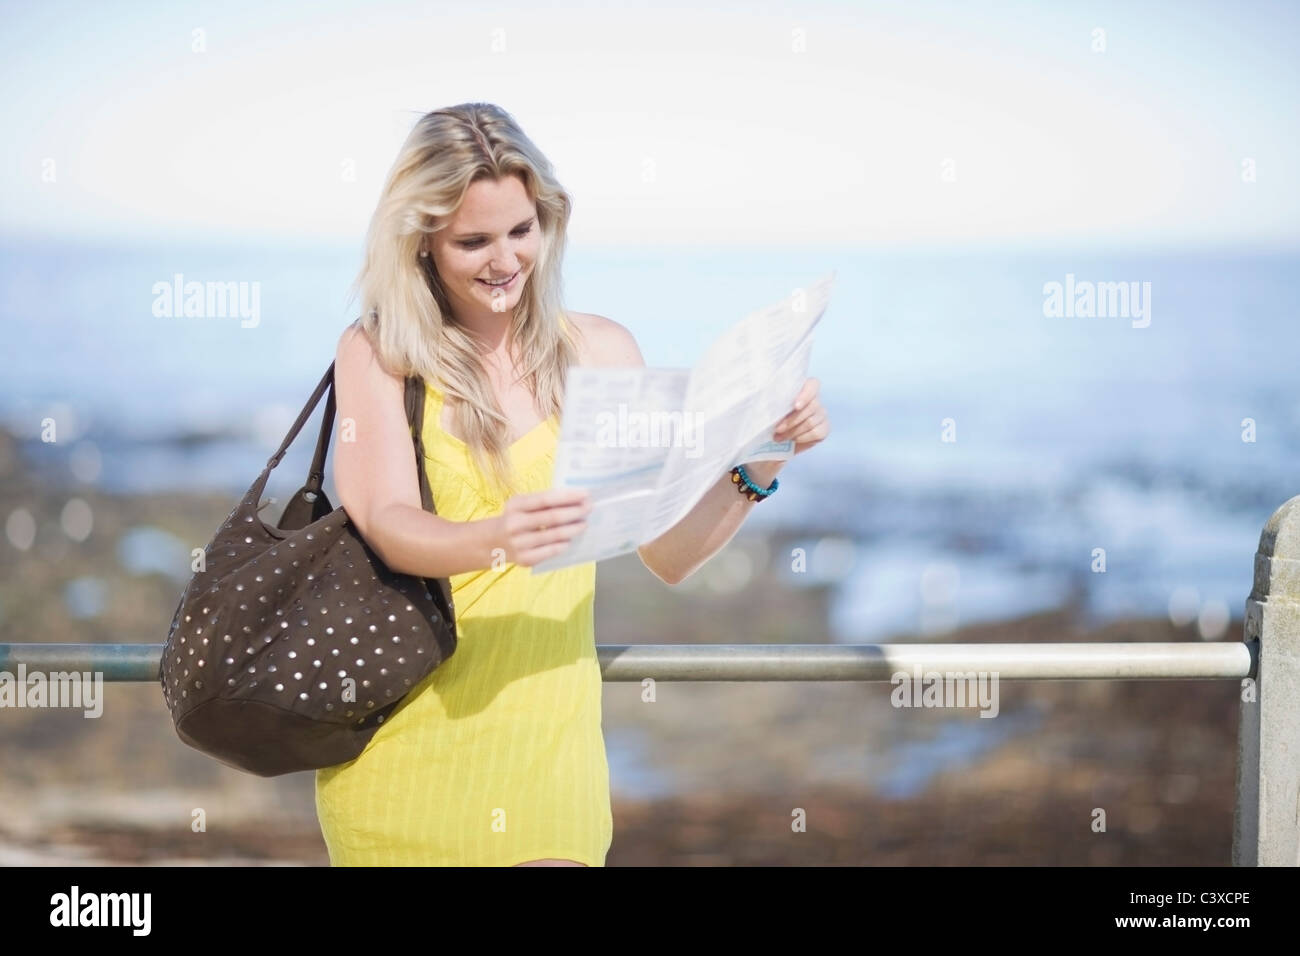 Woman on a holyday trip - Stock Image